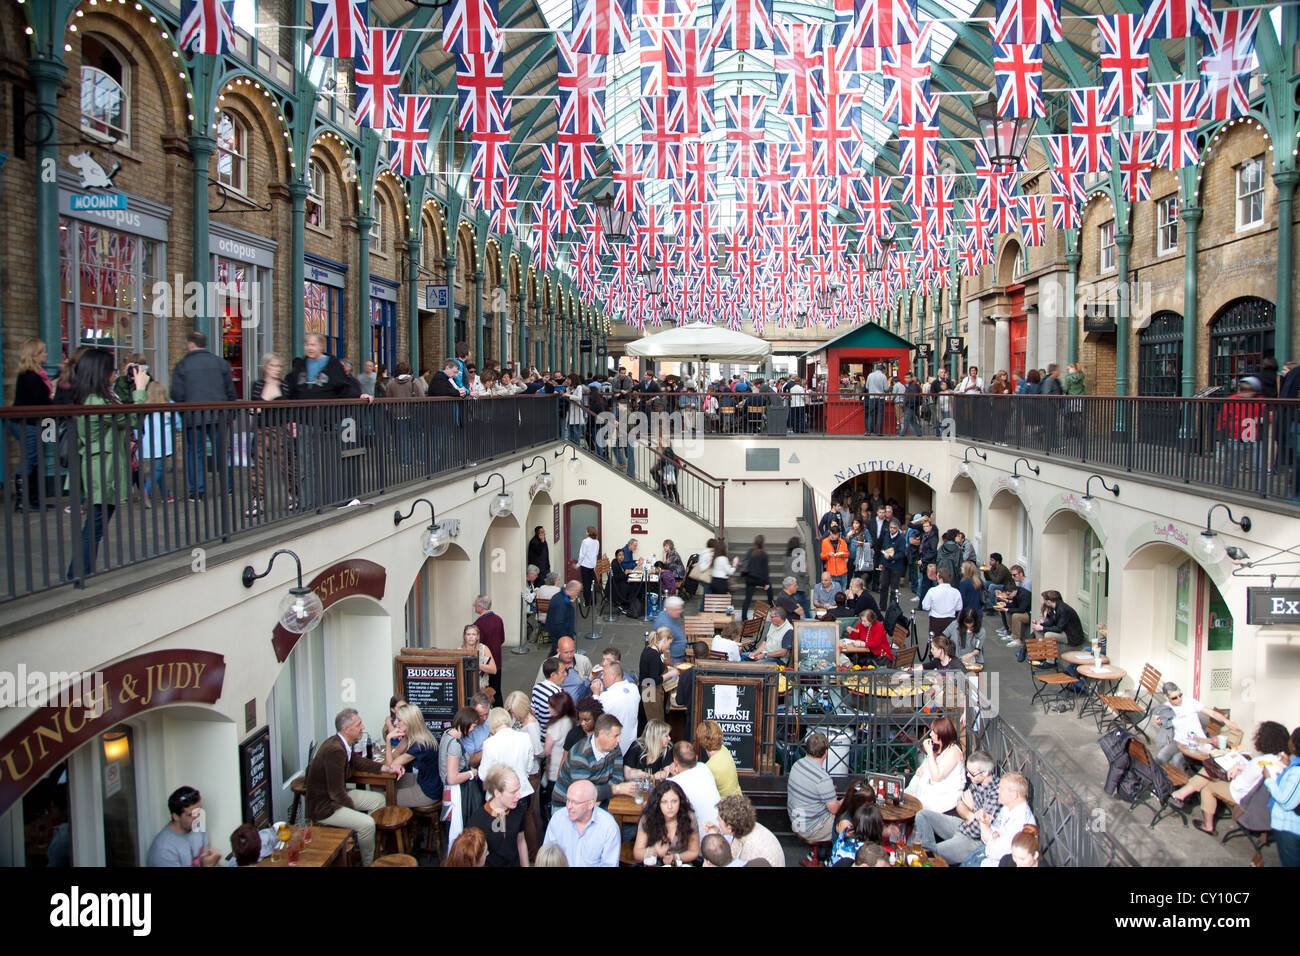 Covent garden flower market interior small 2 - Union Jack Flag Buntings Decorate Covent Garden Market Interior Stock